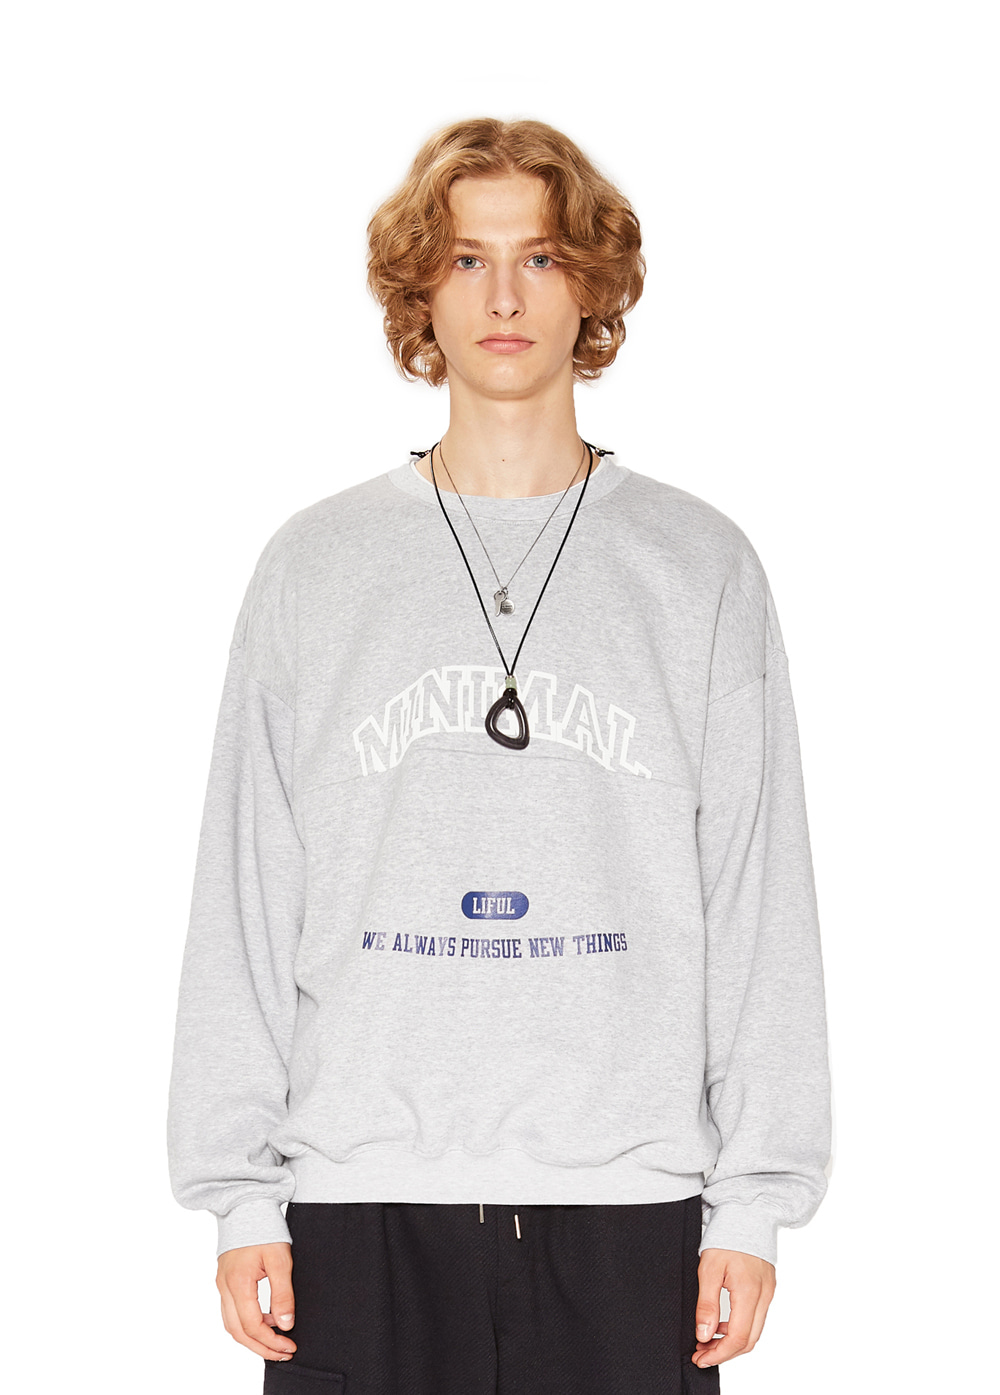 COLLEGE MIX SWEATSHIRT melange gray